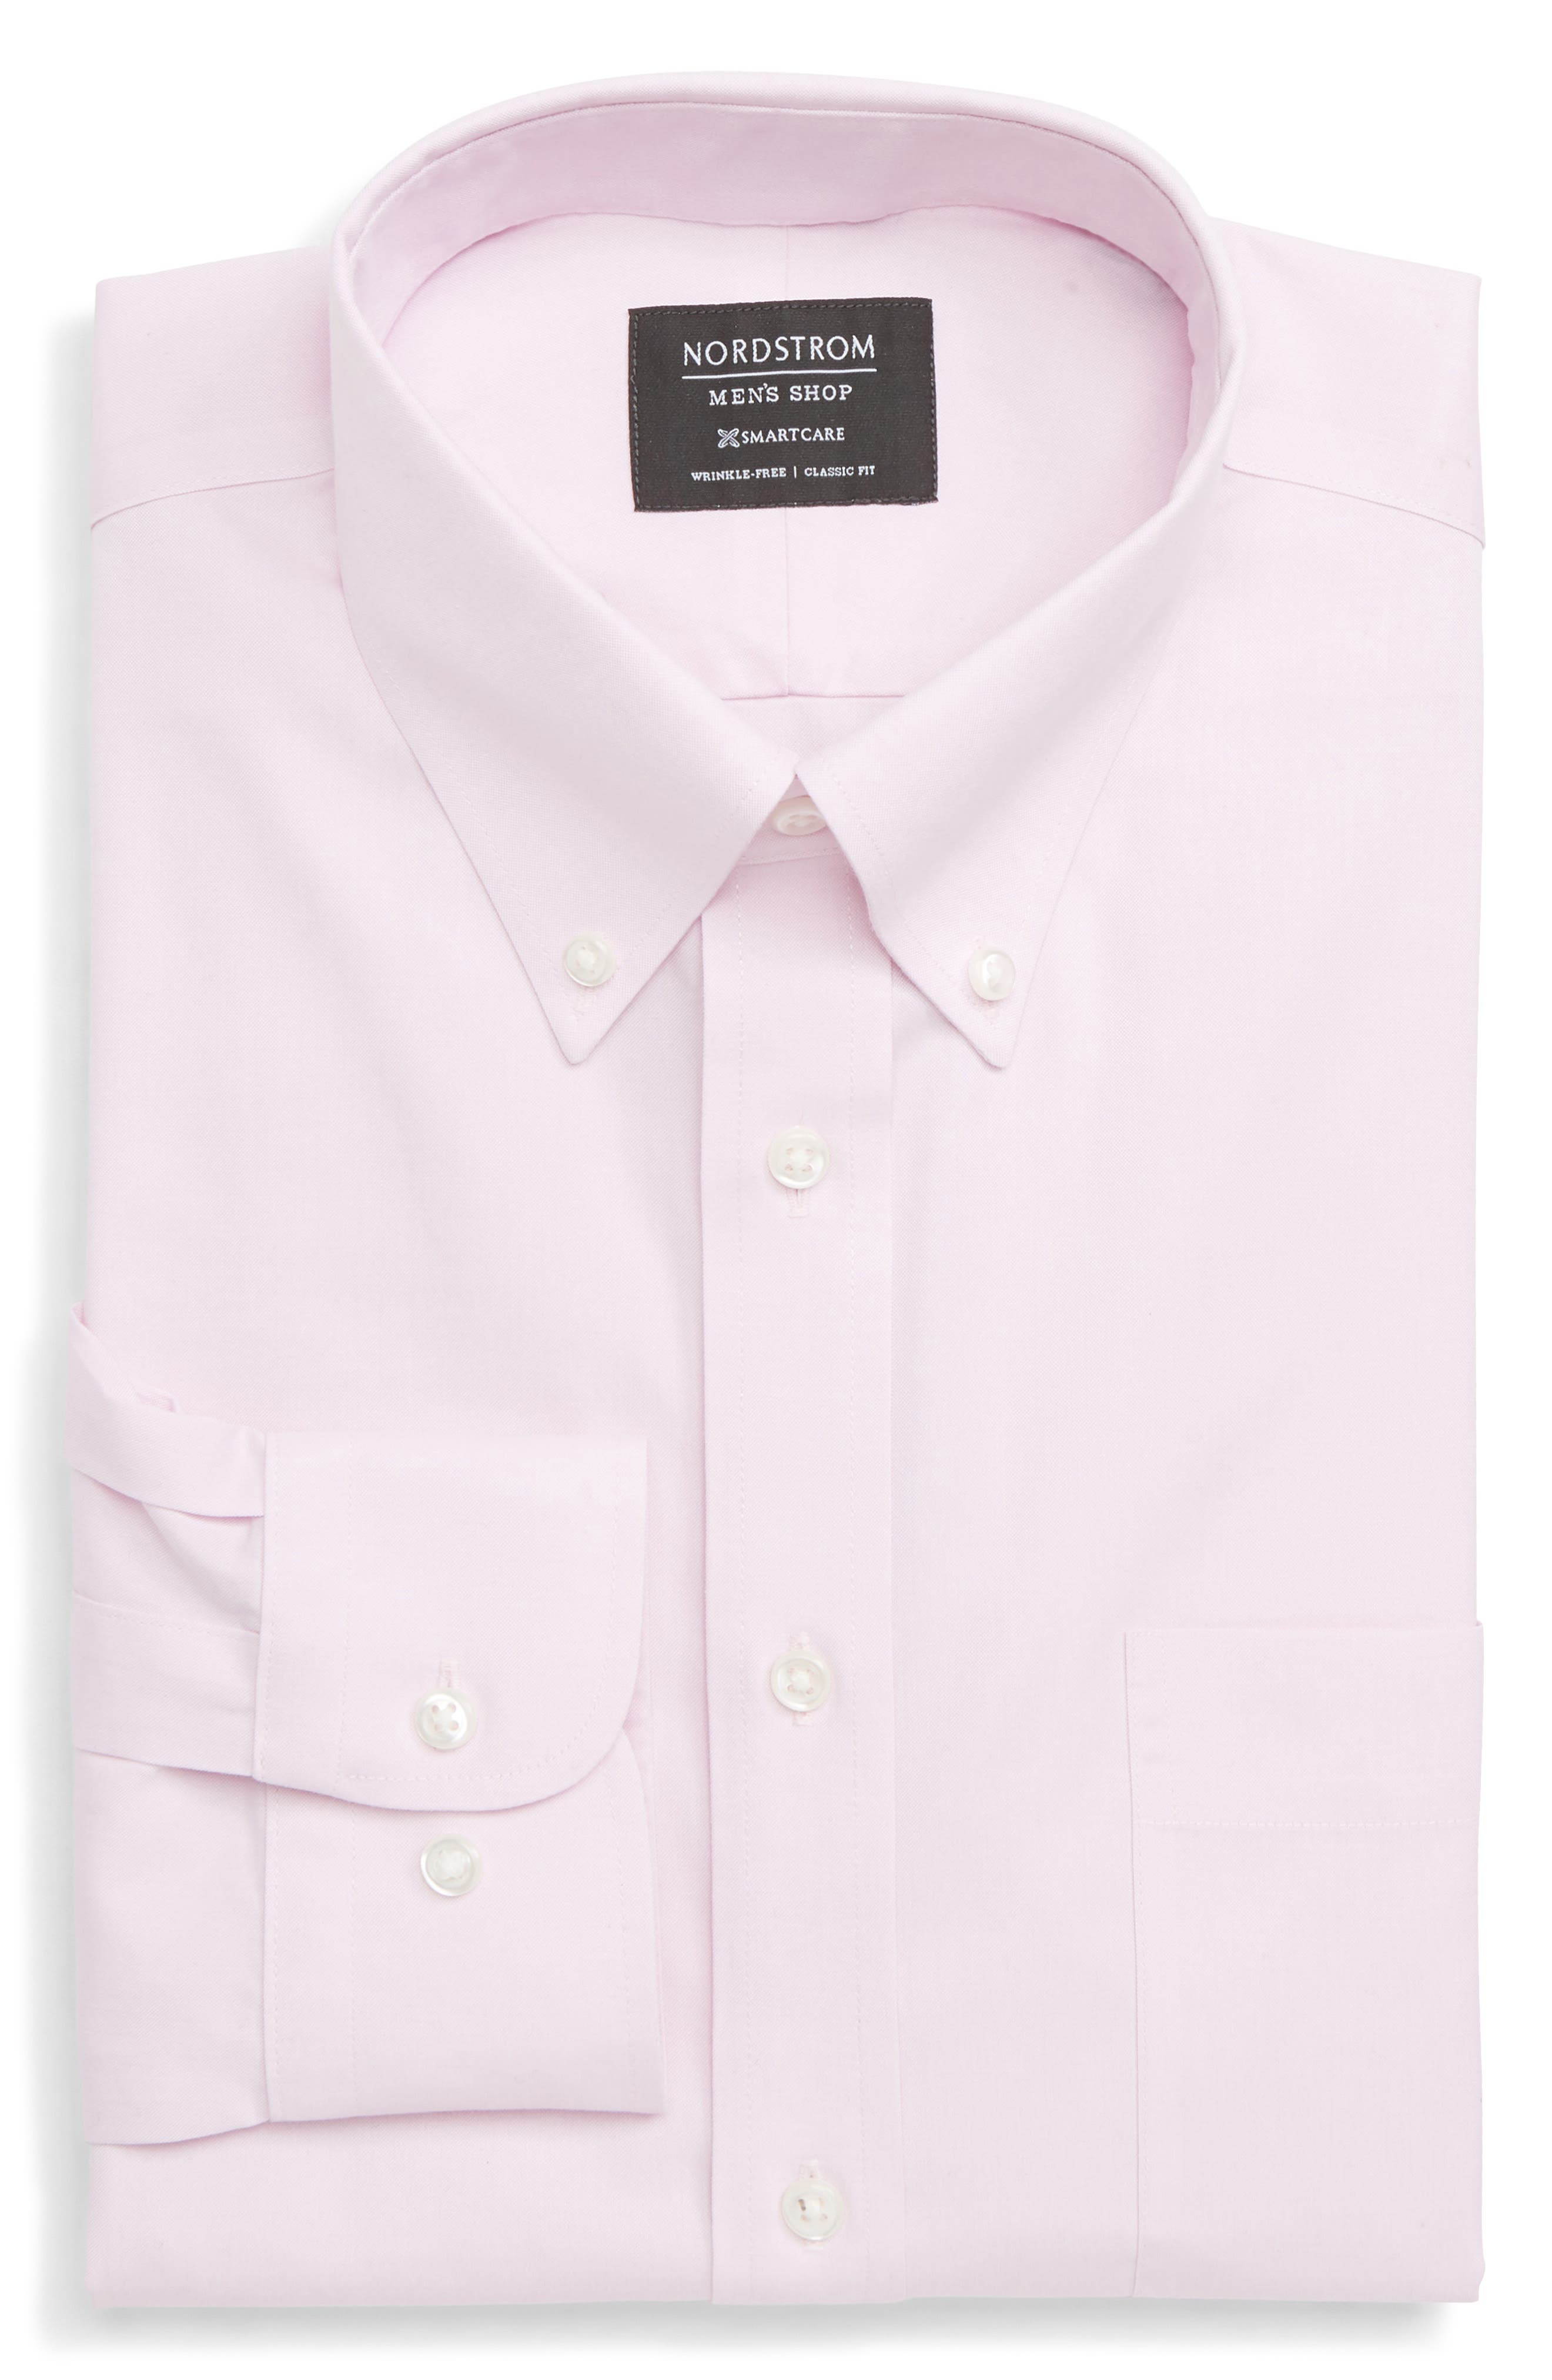 Nordstrom Shop Smartcare(TM) Classic Fit Dress Shirt - Pink